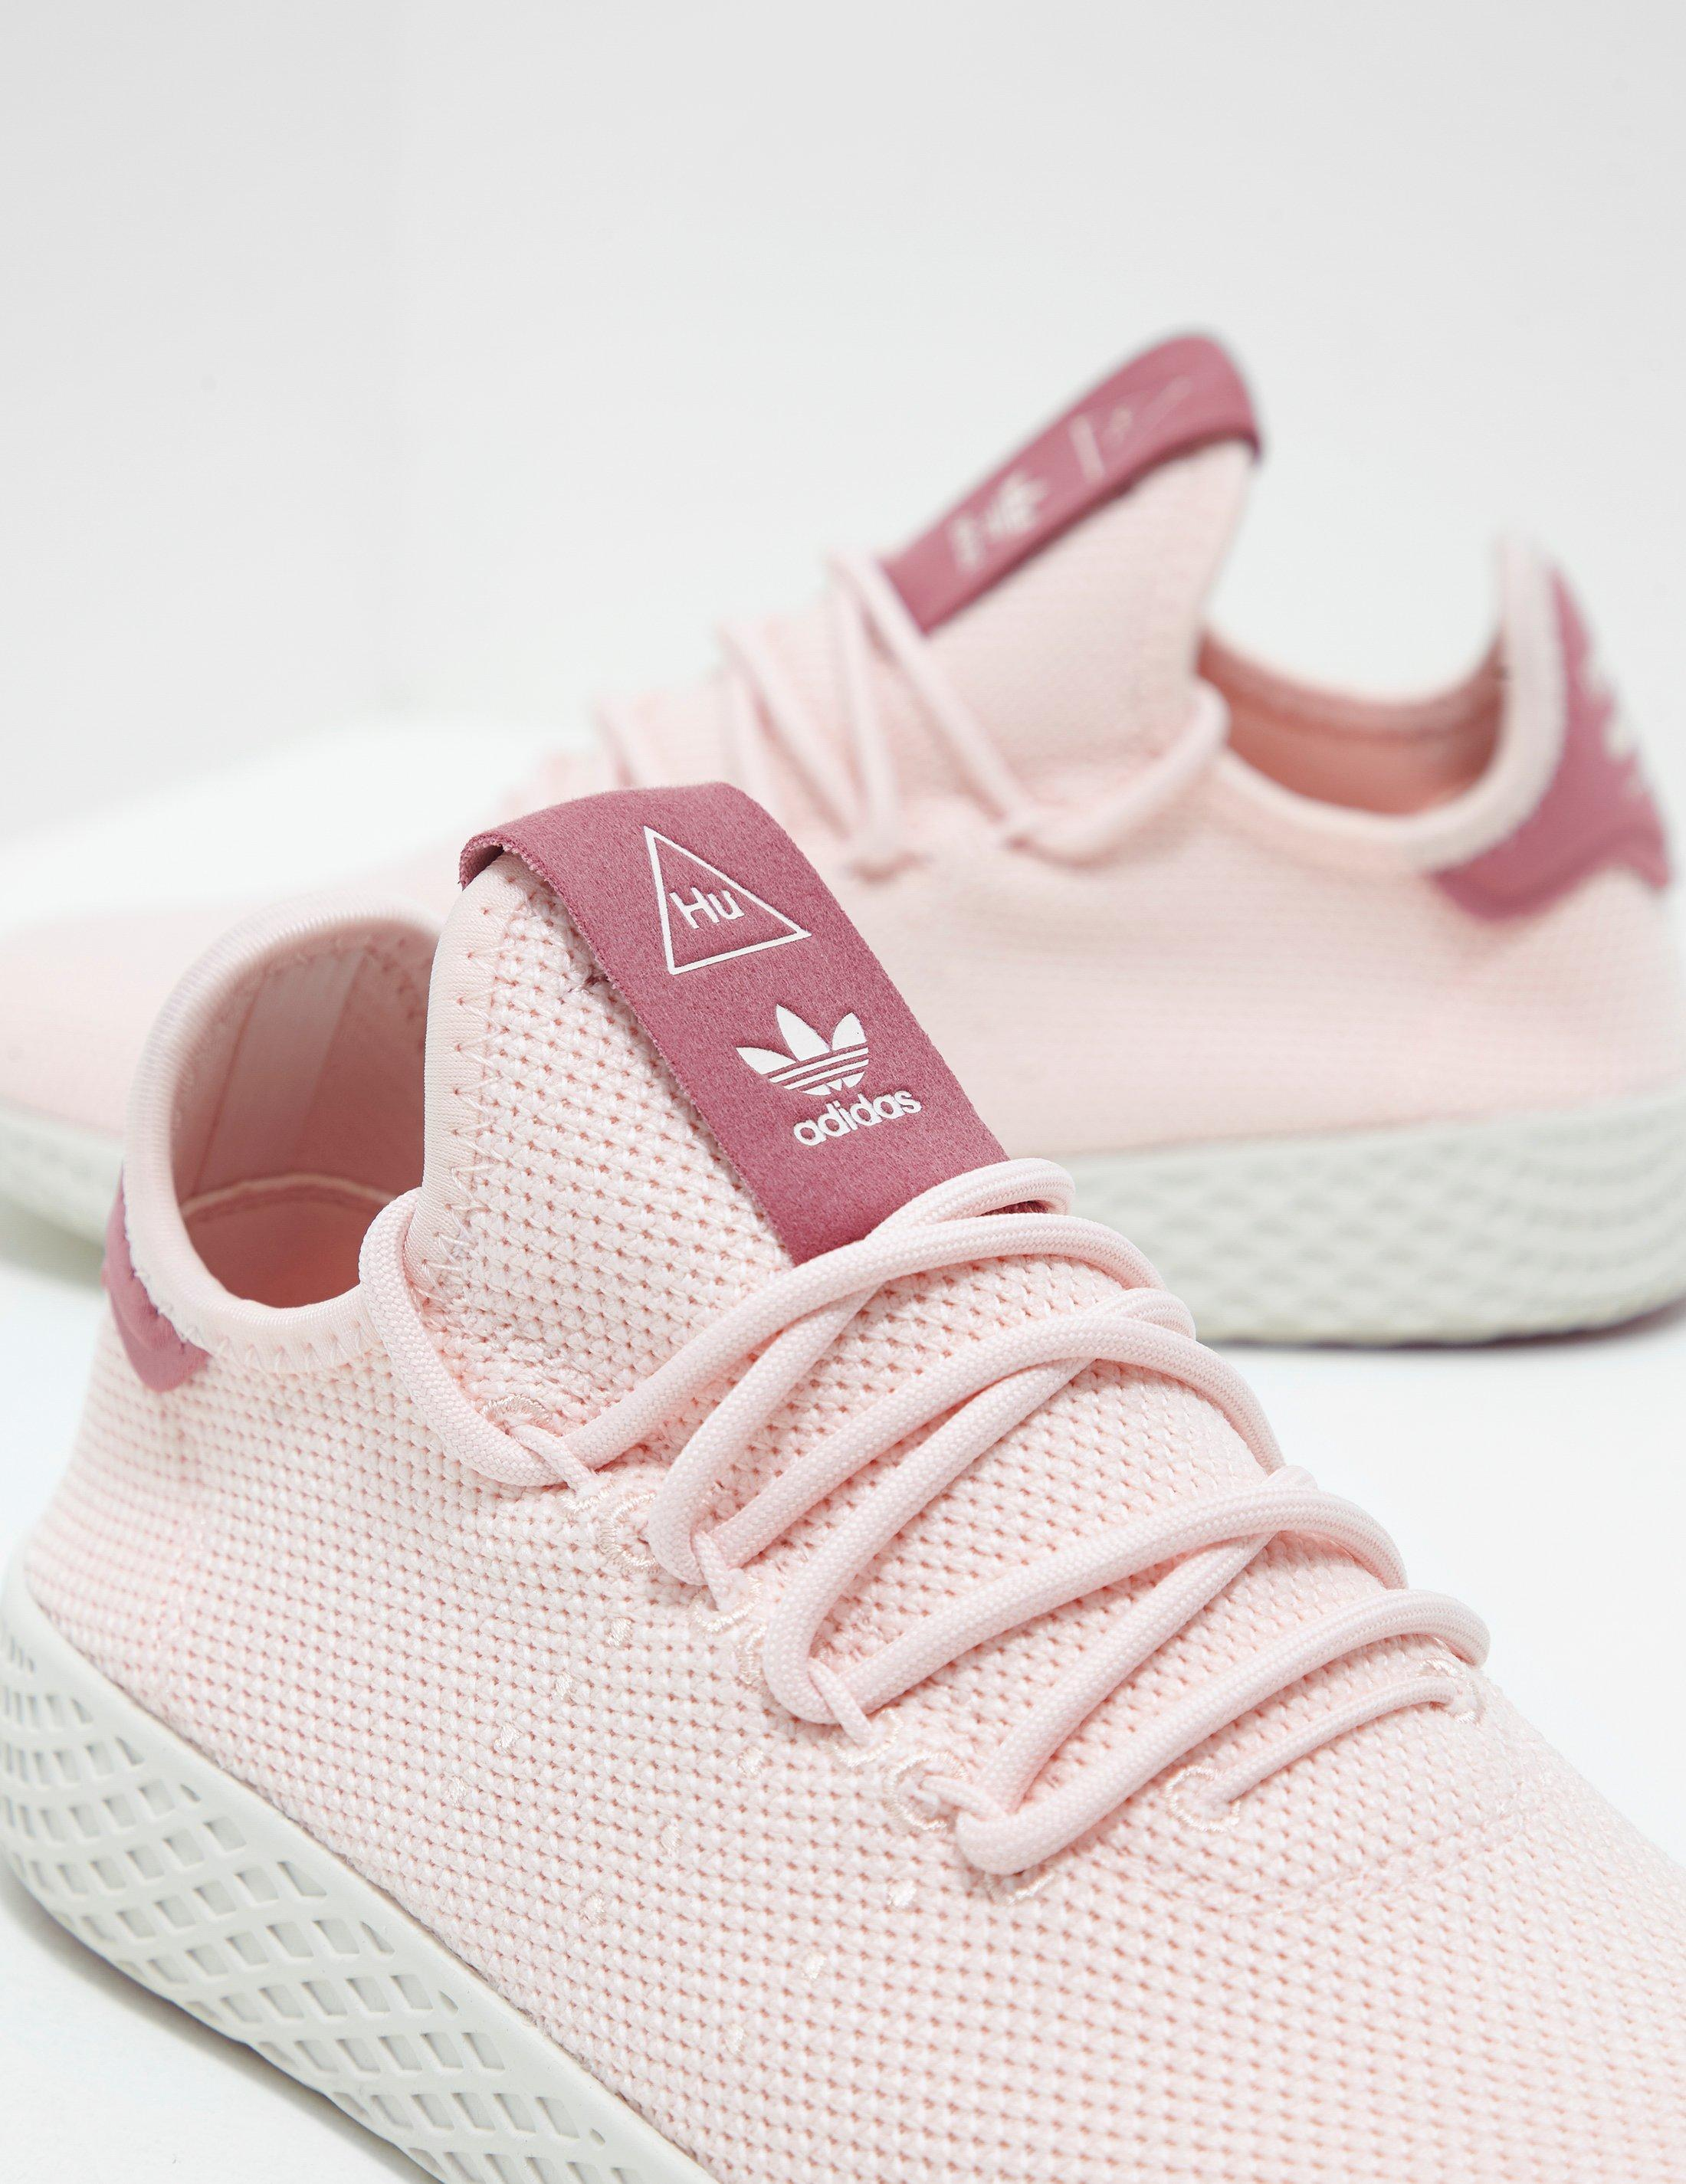 0bdb978d5bb14 adidas Originals X Pharrell Williams Tennis Hu Trainers Pink in Pink - Save  42% - Lyst